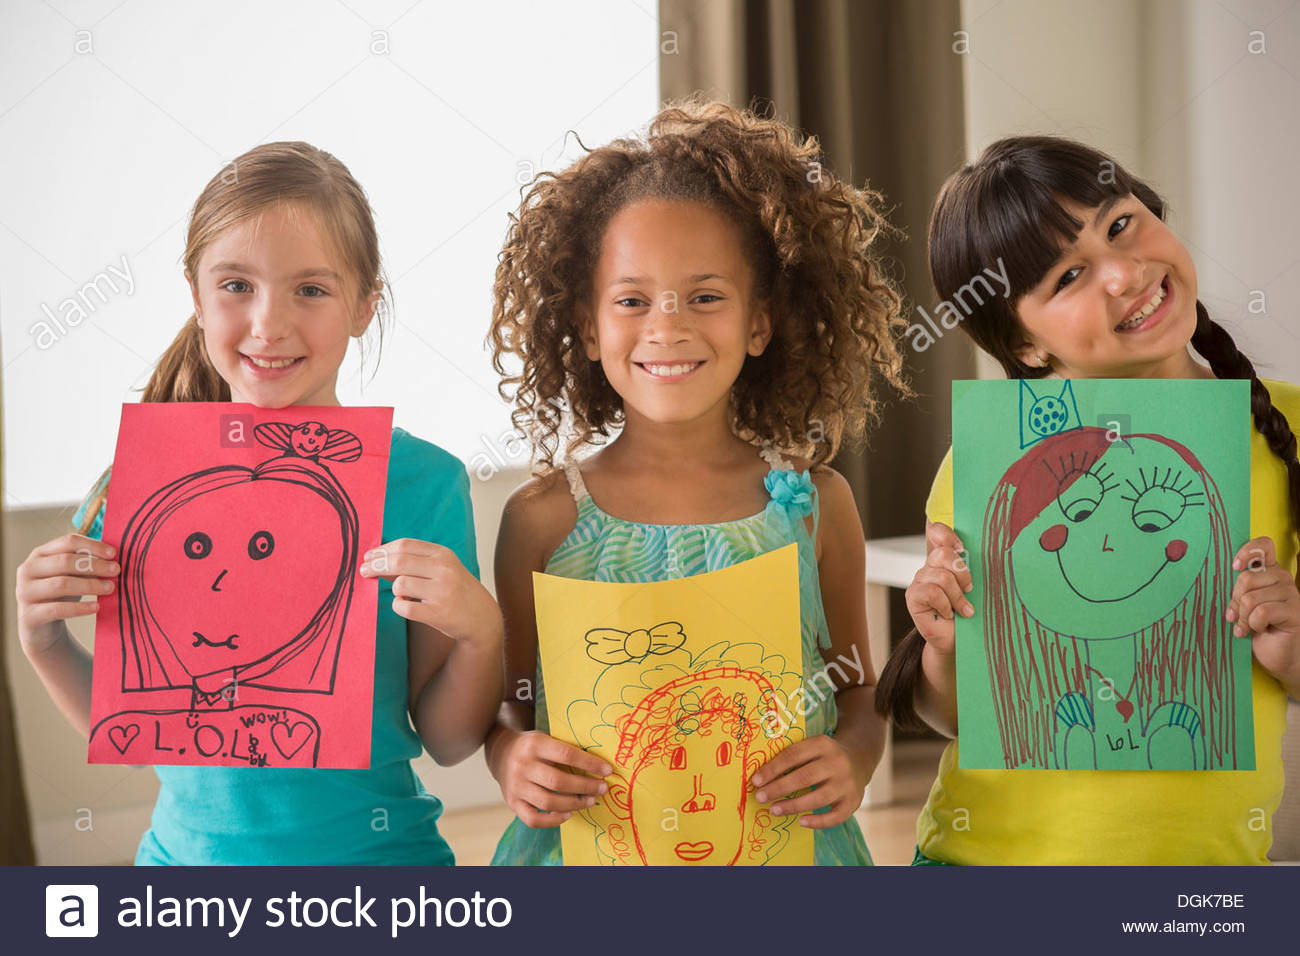 Three girls holding drawings of faces - Stock Image